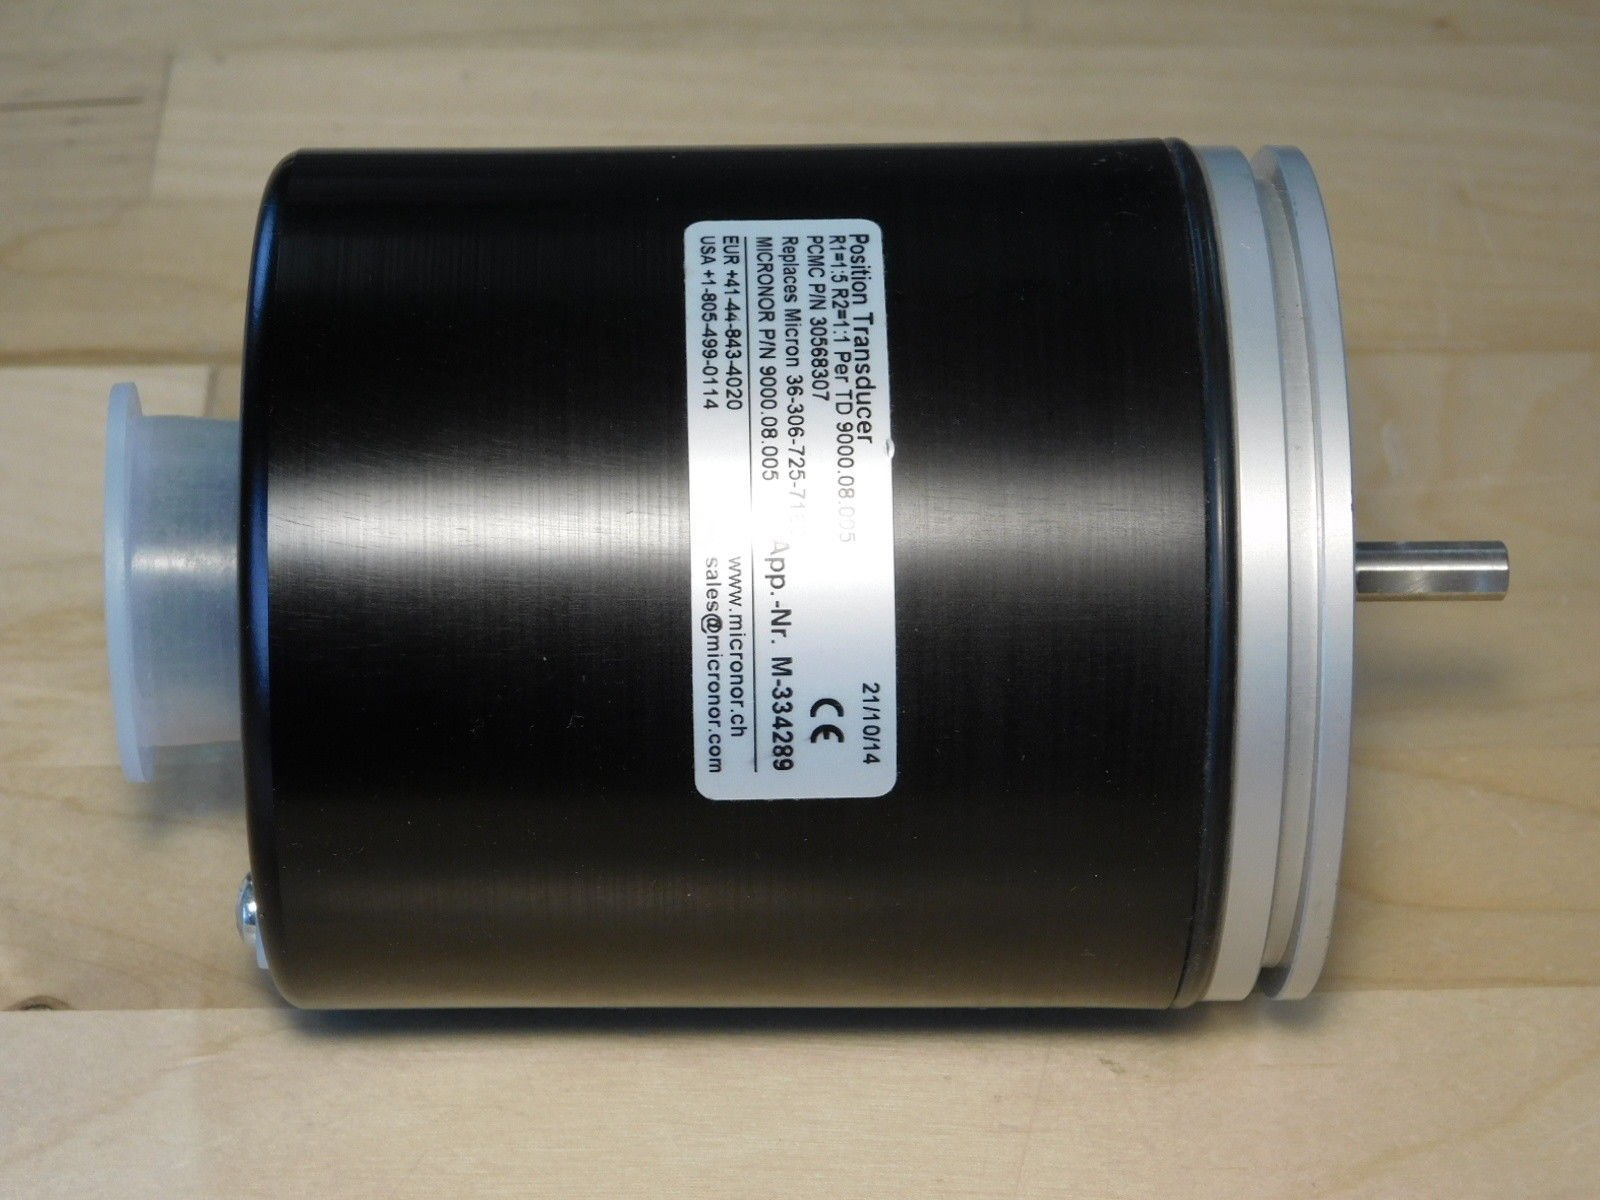 BRAND NEW - PCMC 30568307 Position Transducer / Micronor 9000.08.005